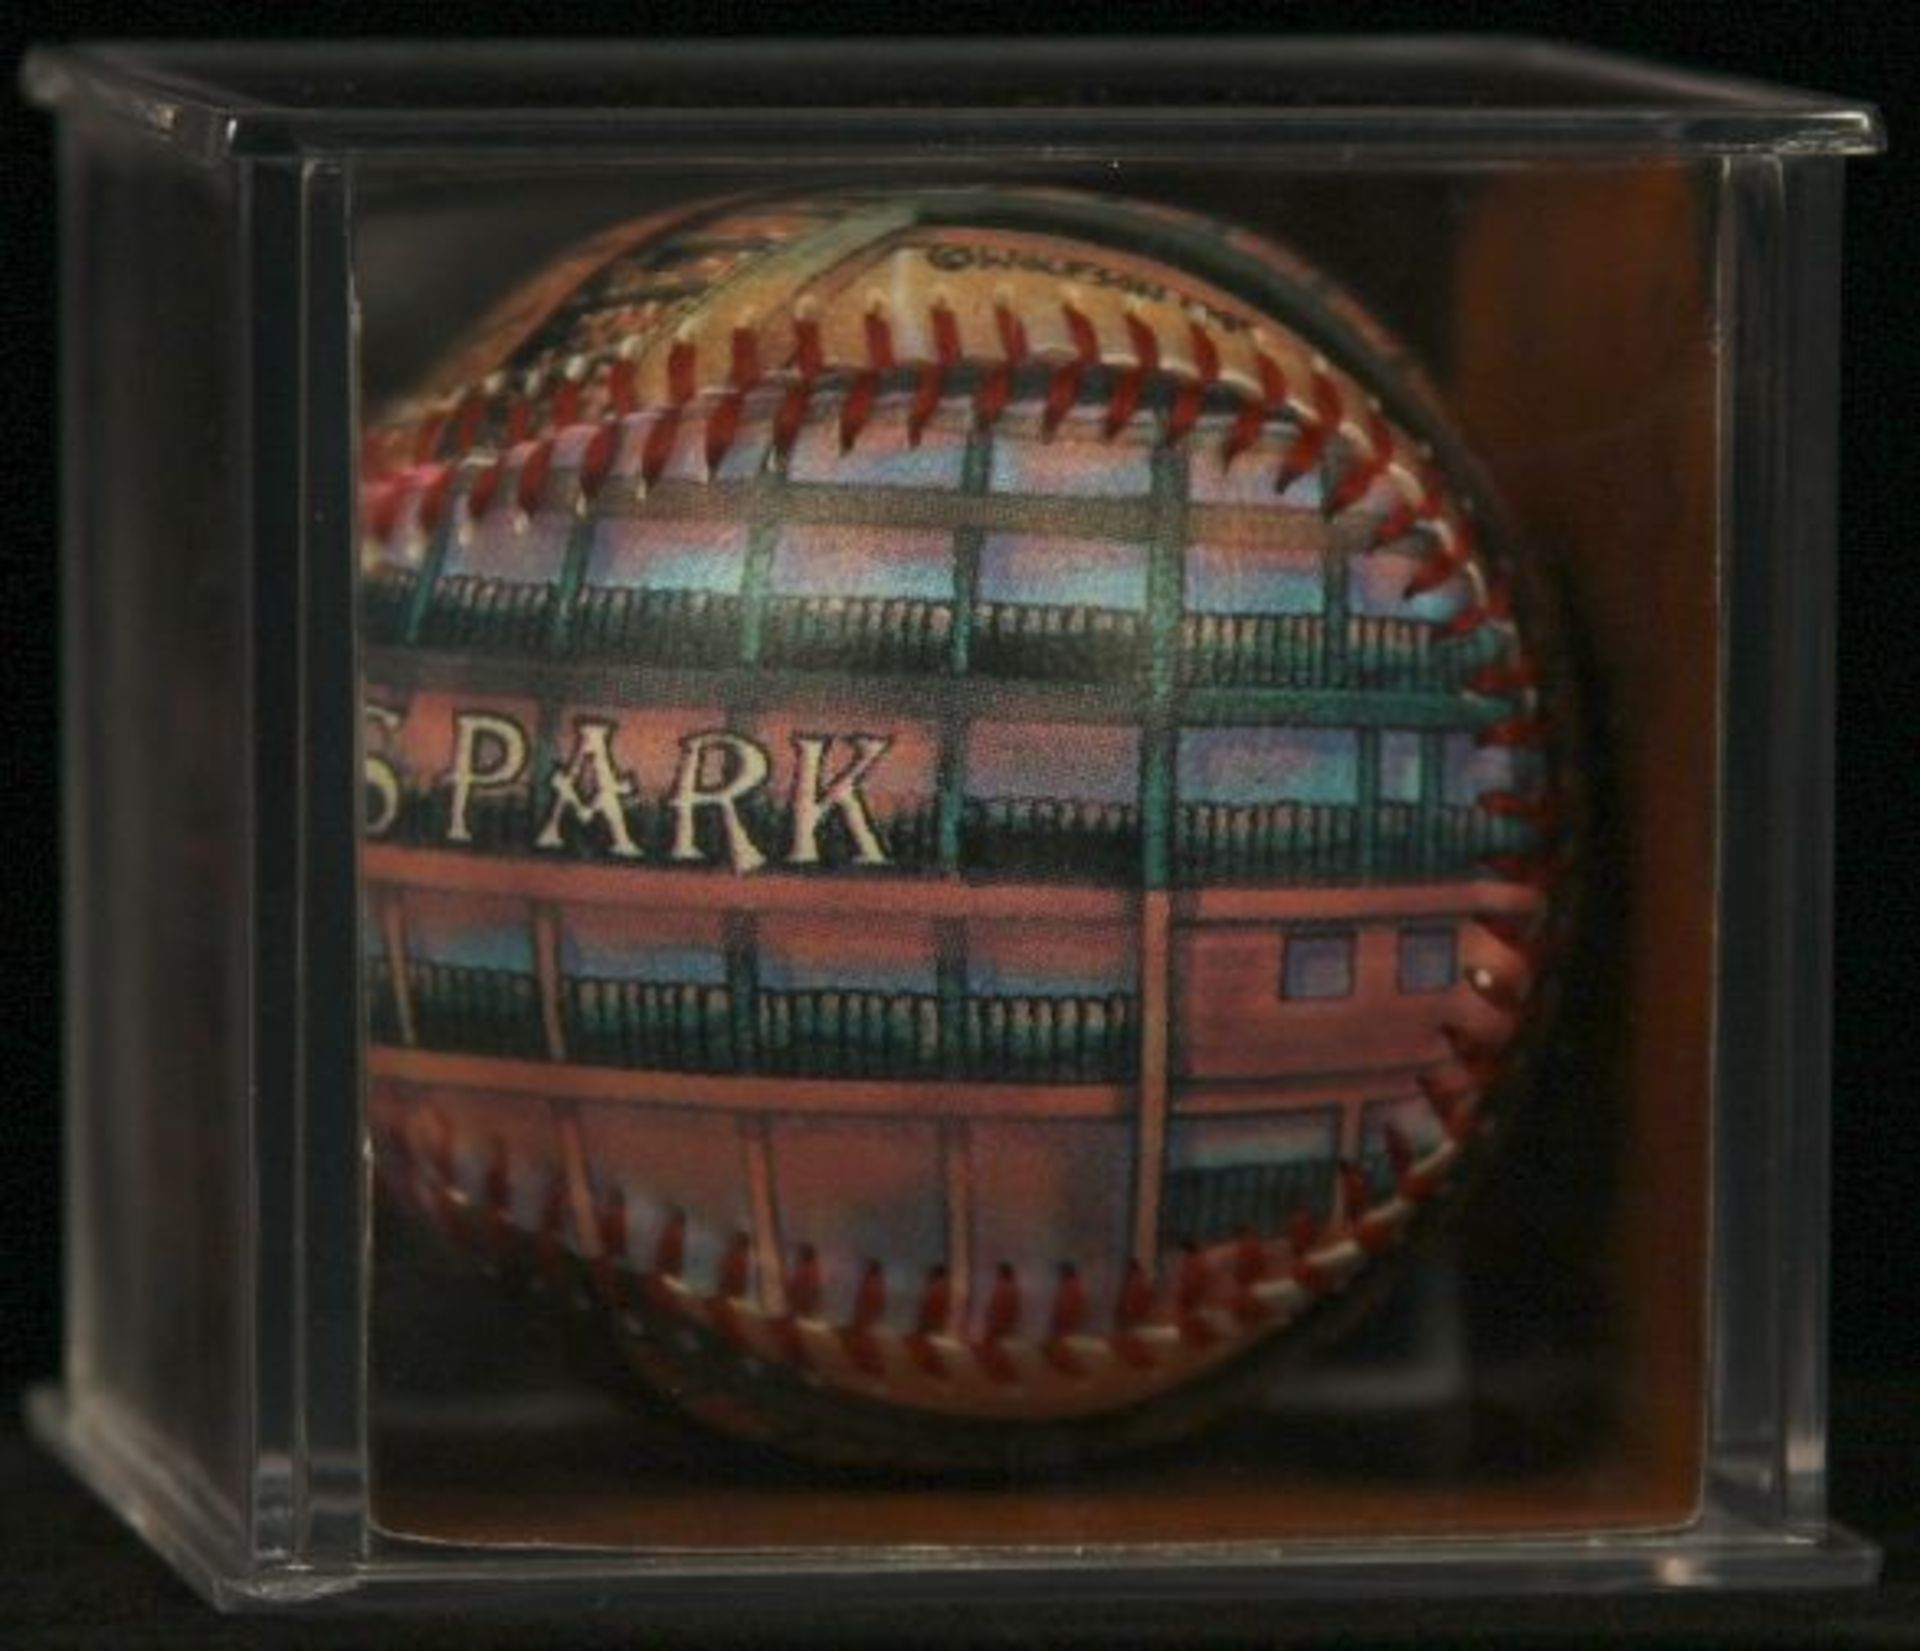 "Unforgettaball! ""Sportsman's Park"" Nostalgia Series Collectable Baseball - Image 3 of 4"